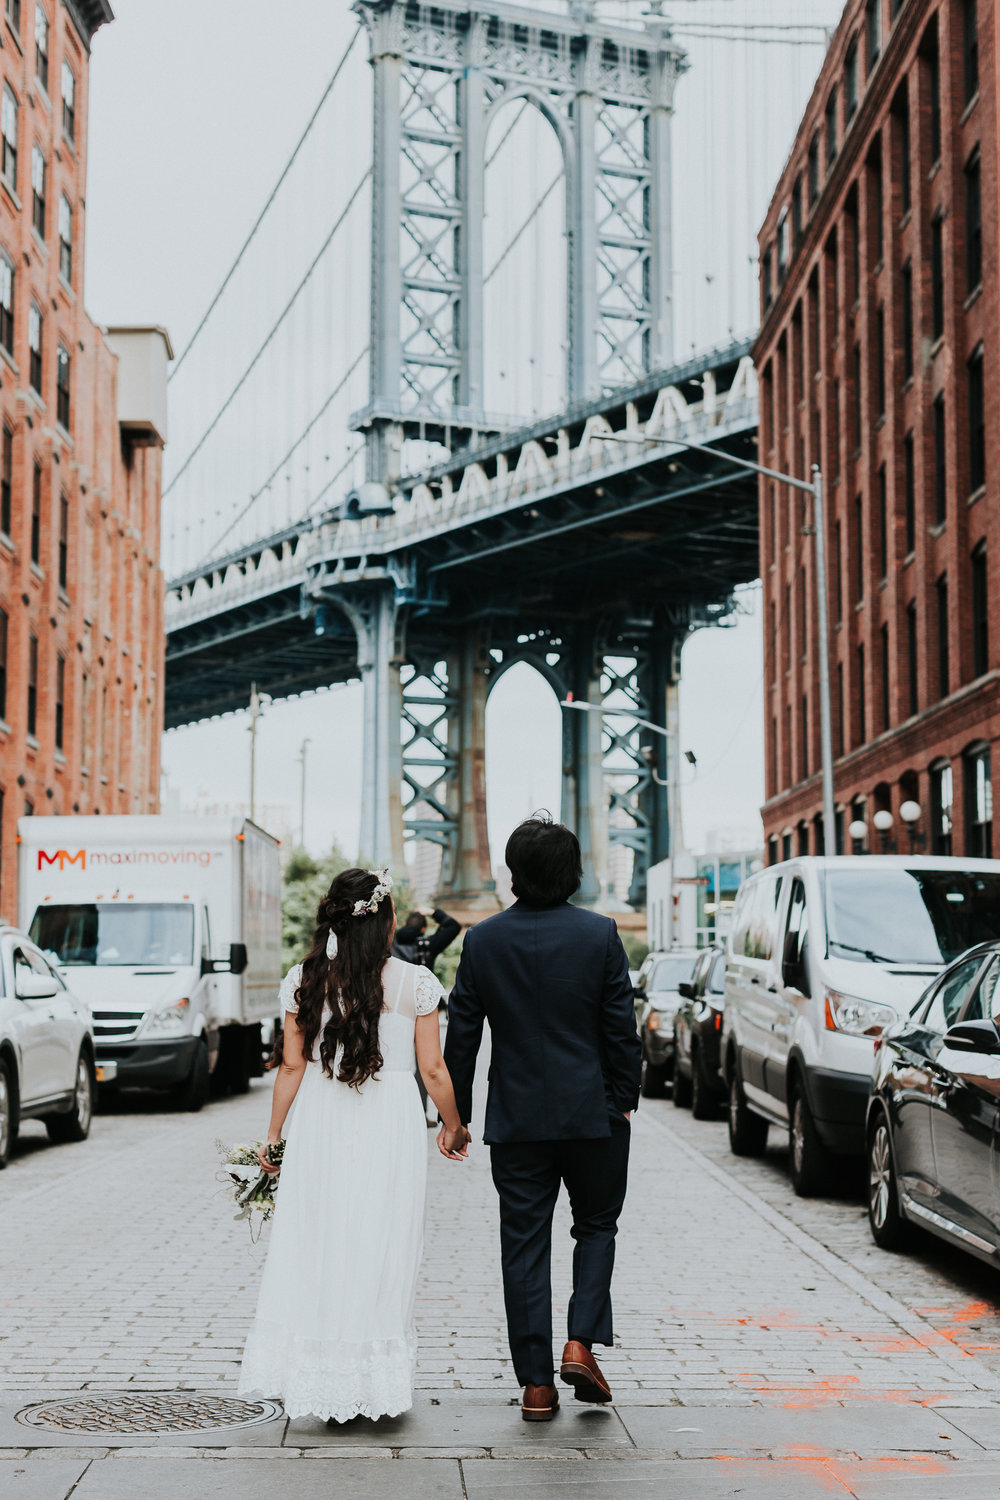 Central-Park-Brooklyn-Bridge-Dumbo-NYC-Documentary-Wedding-Photographer-3.jpg